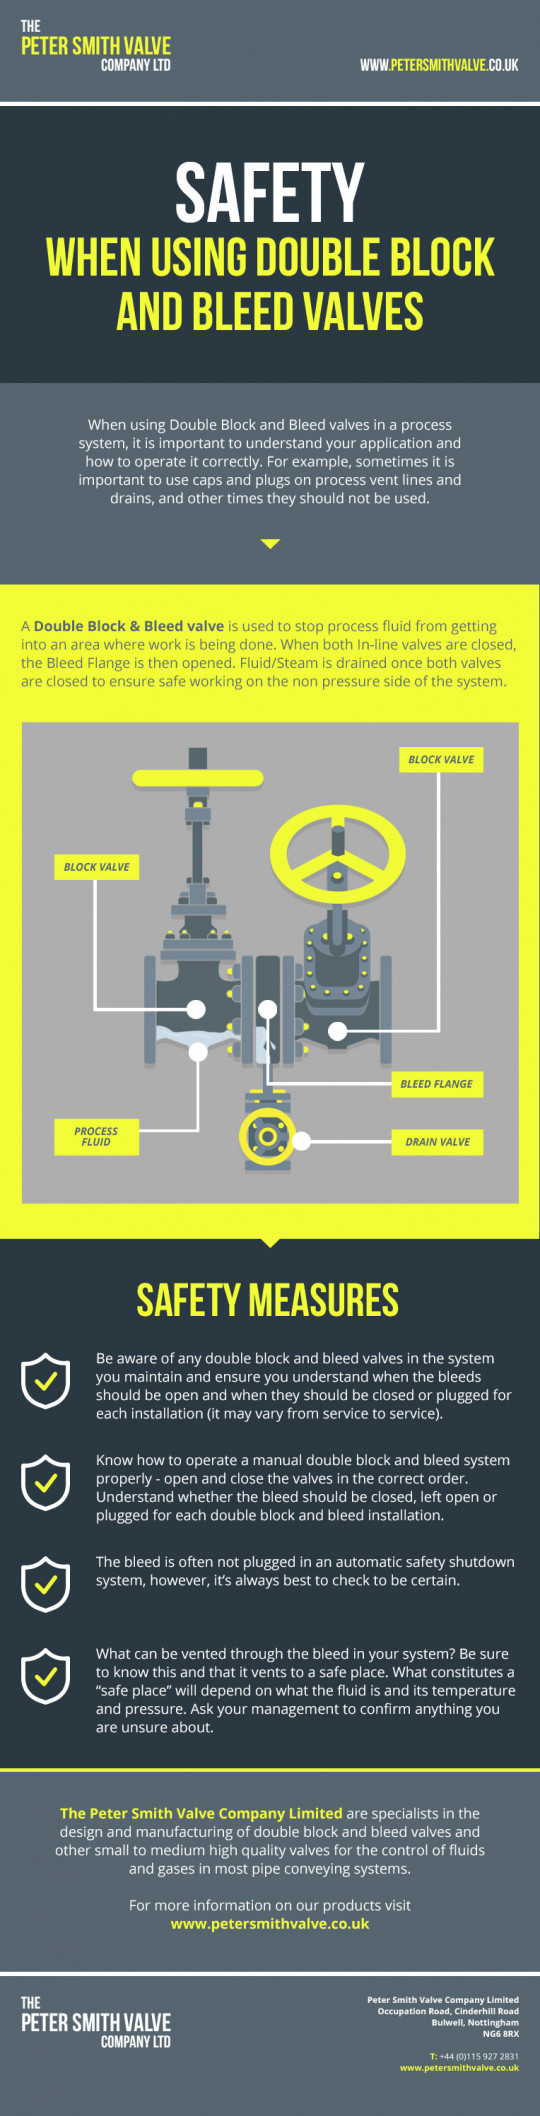 Safety When Using Double Block and Bleed Valves